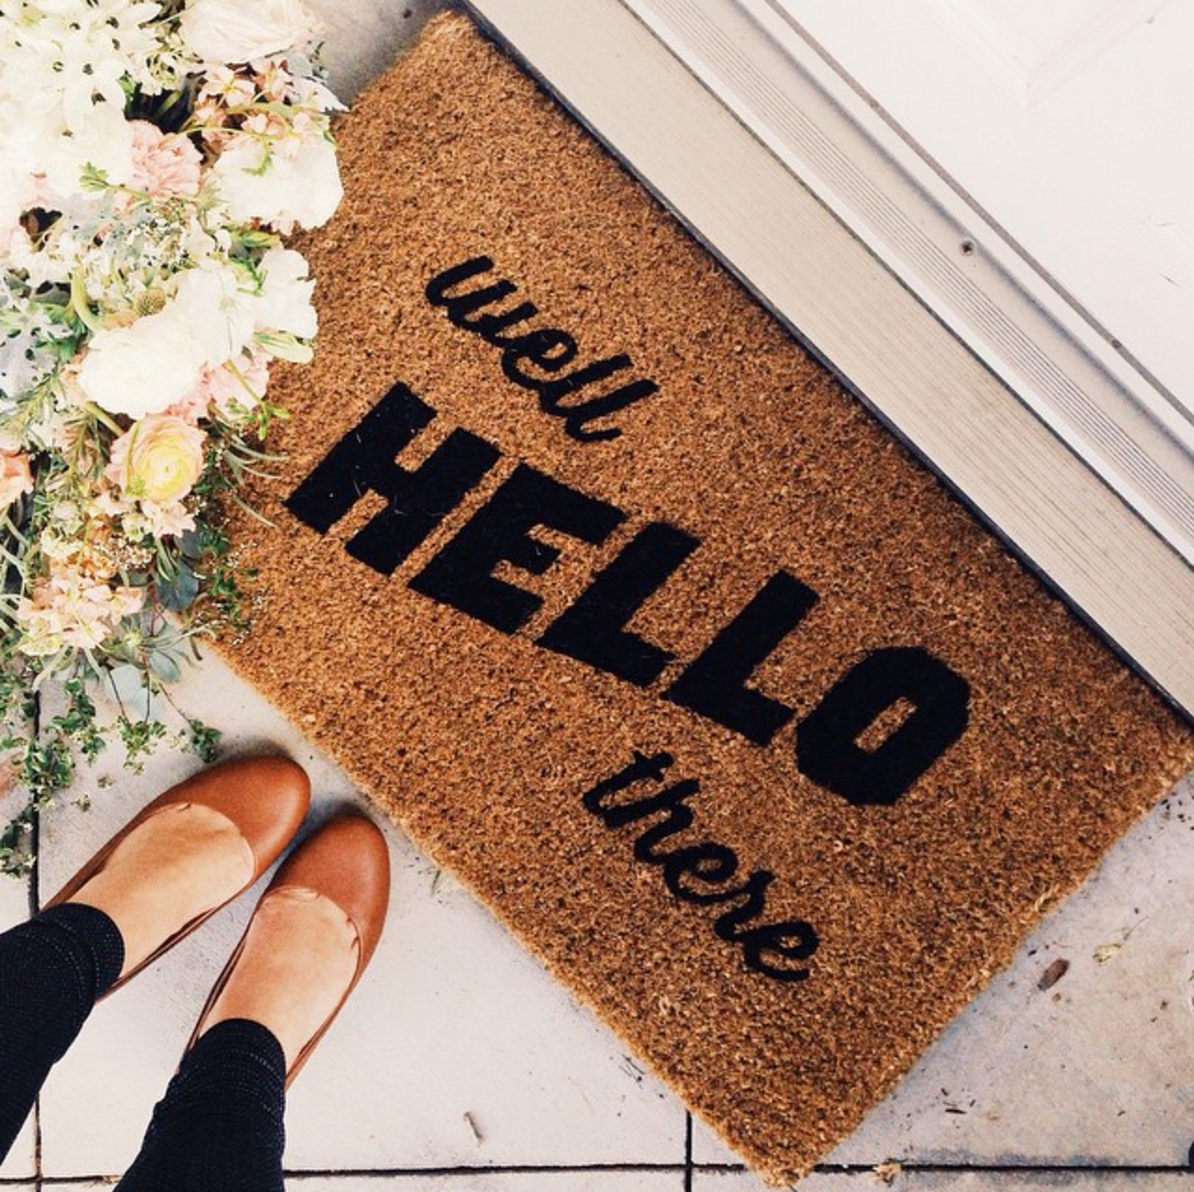 Where to Find The Cutest Doormats Ever: Well Hello There Doormat. Click through for the details. | glitterinc.com | @glitterinc